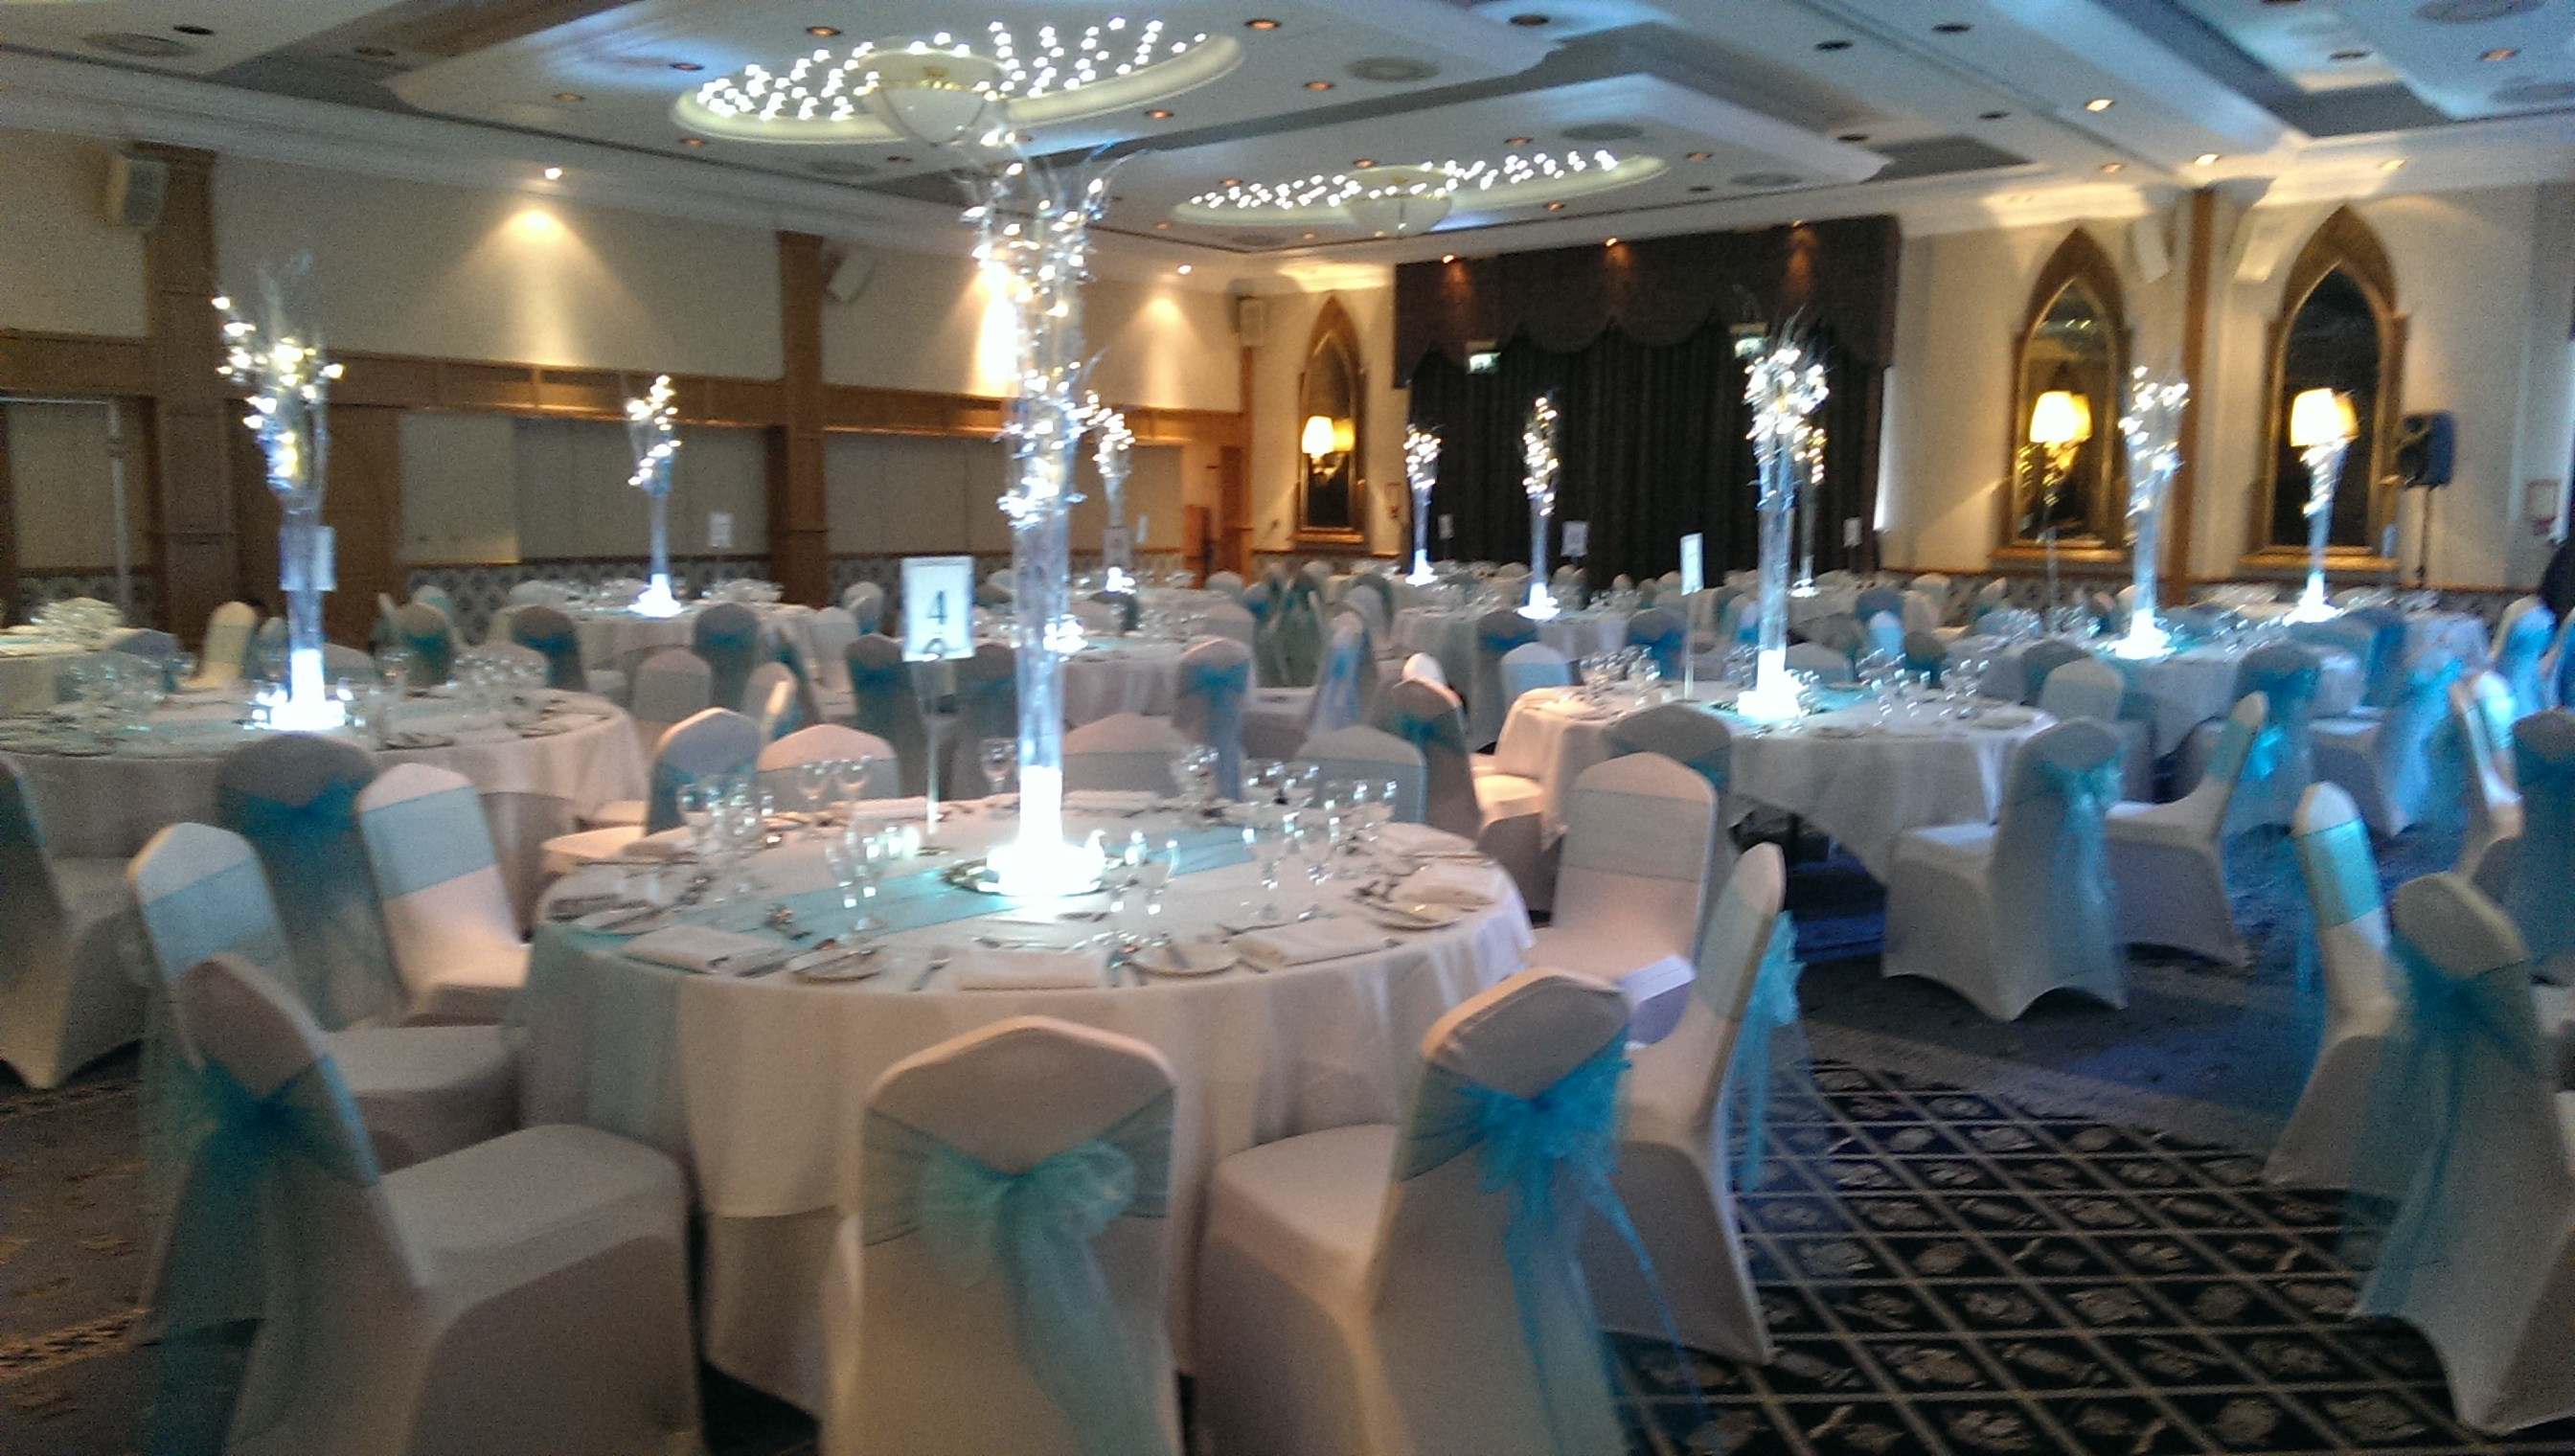 wedding chair covers tamworth x rocker gaming chairs table decorations hire newcastle